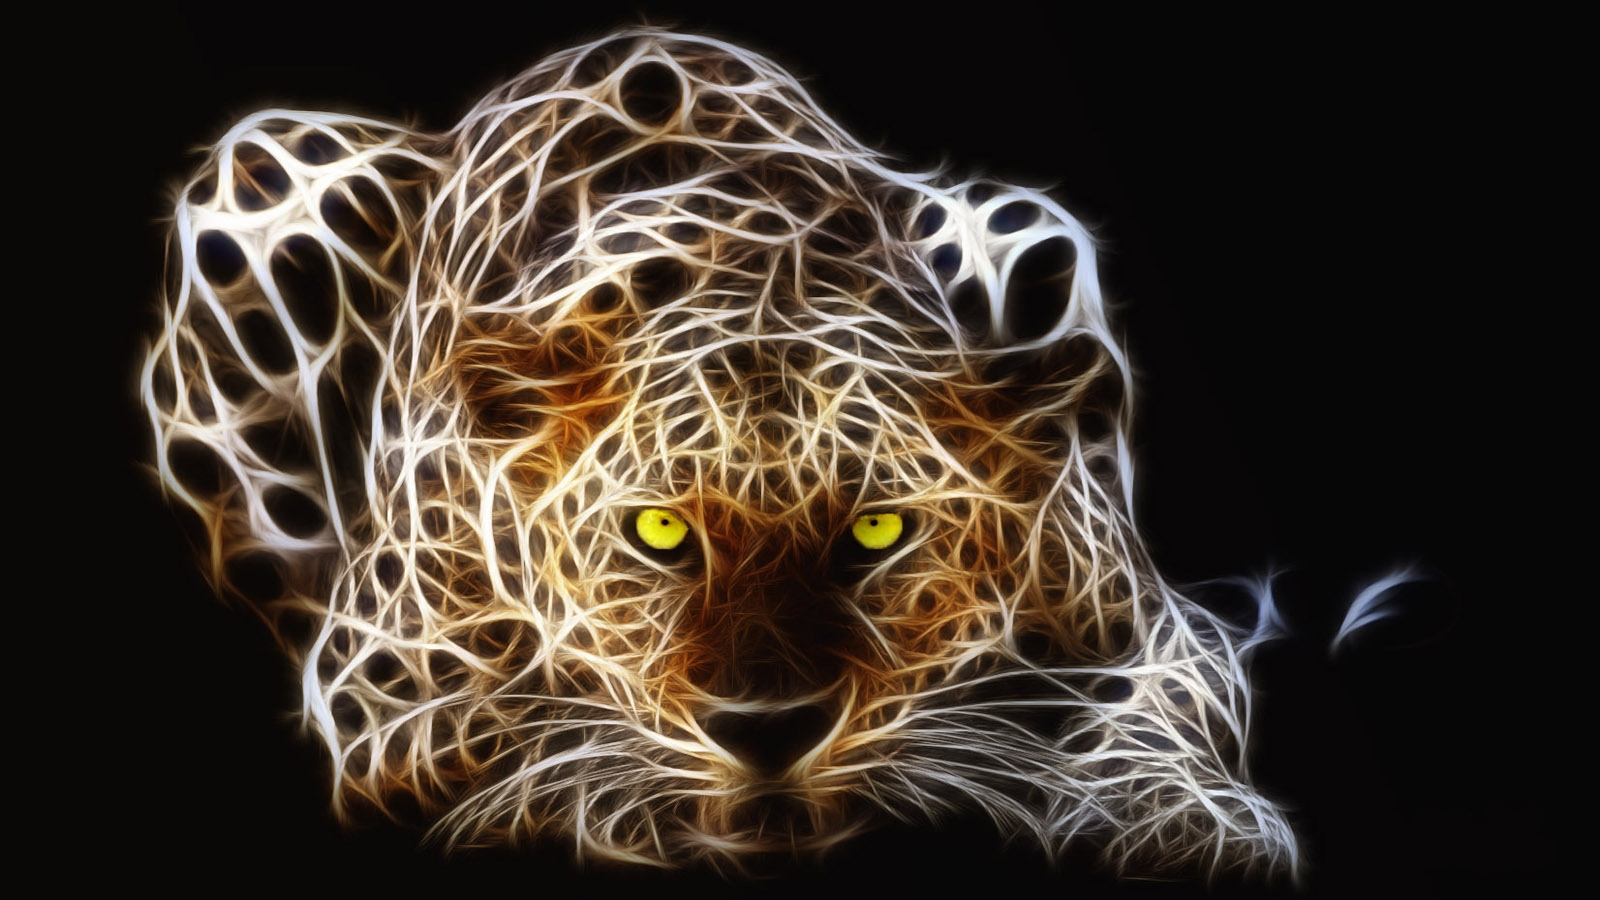 Fractalius Leopards HD Wallpaper